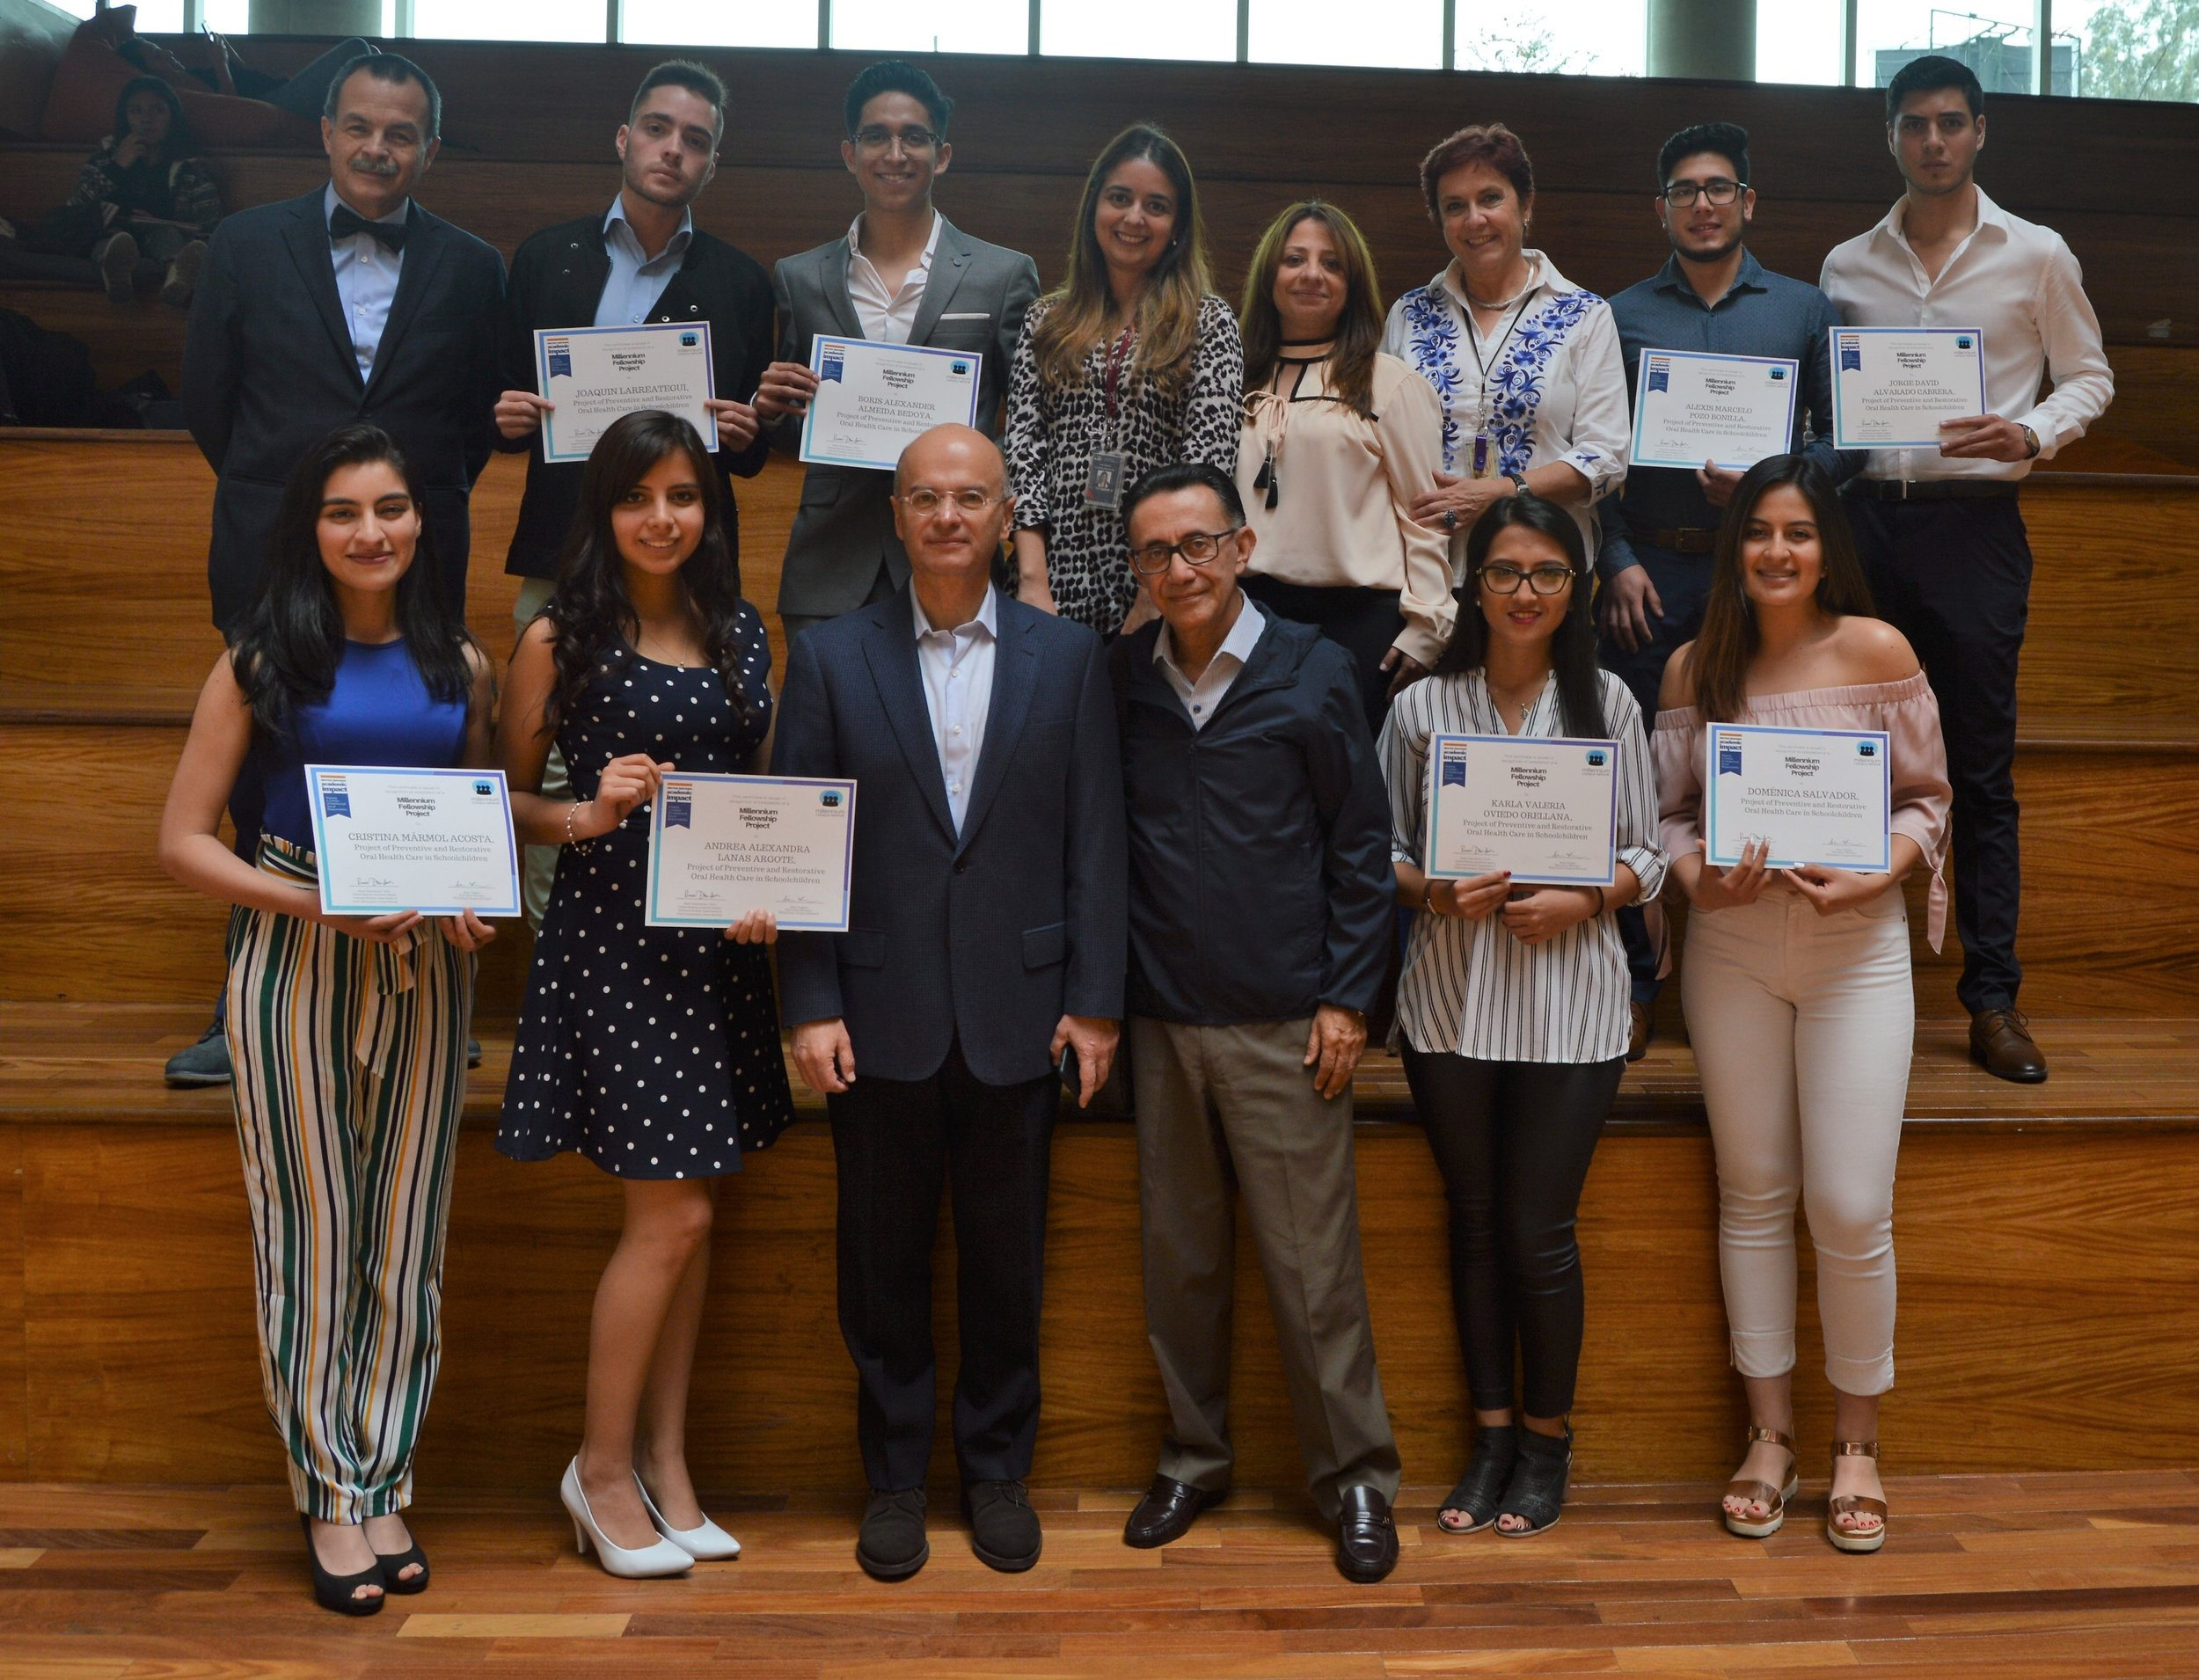 Millennium Fellows at the Universidad de Las Américas in Quito, Ecuador awarded their Millennium Fellowship certificates and celebrated by university staff, faculty, and Rector Carlos Larreategui.